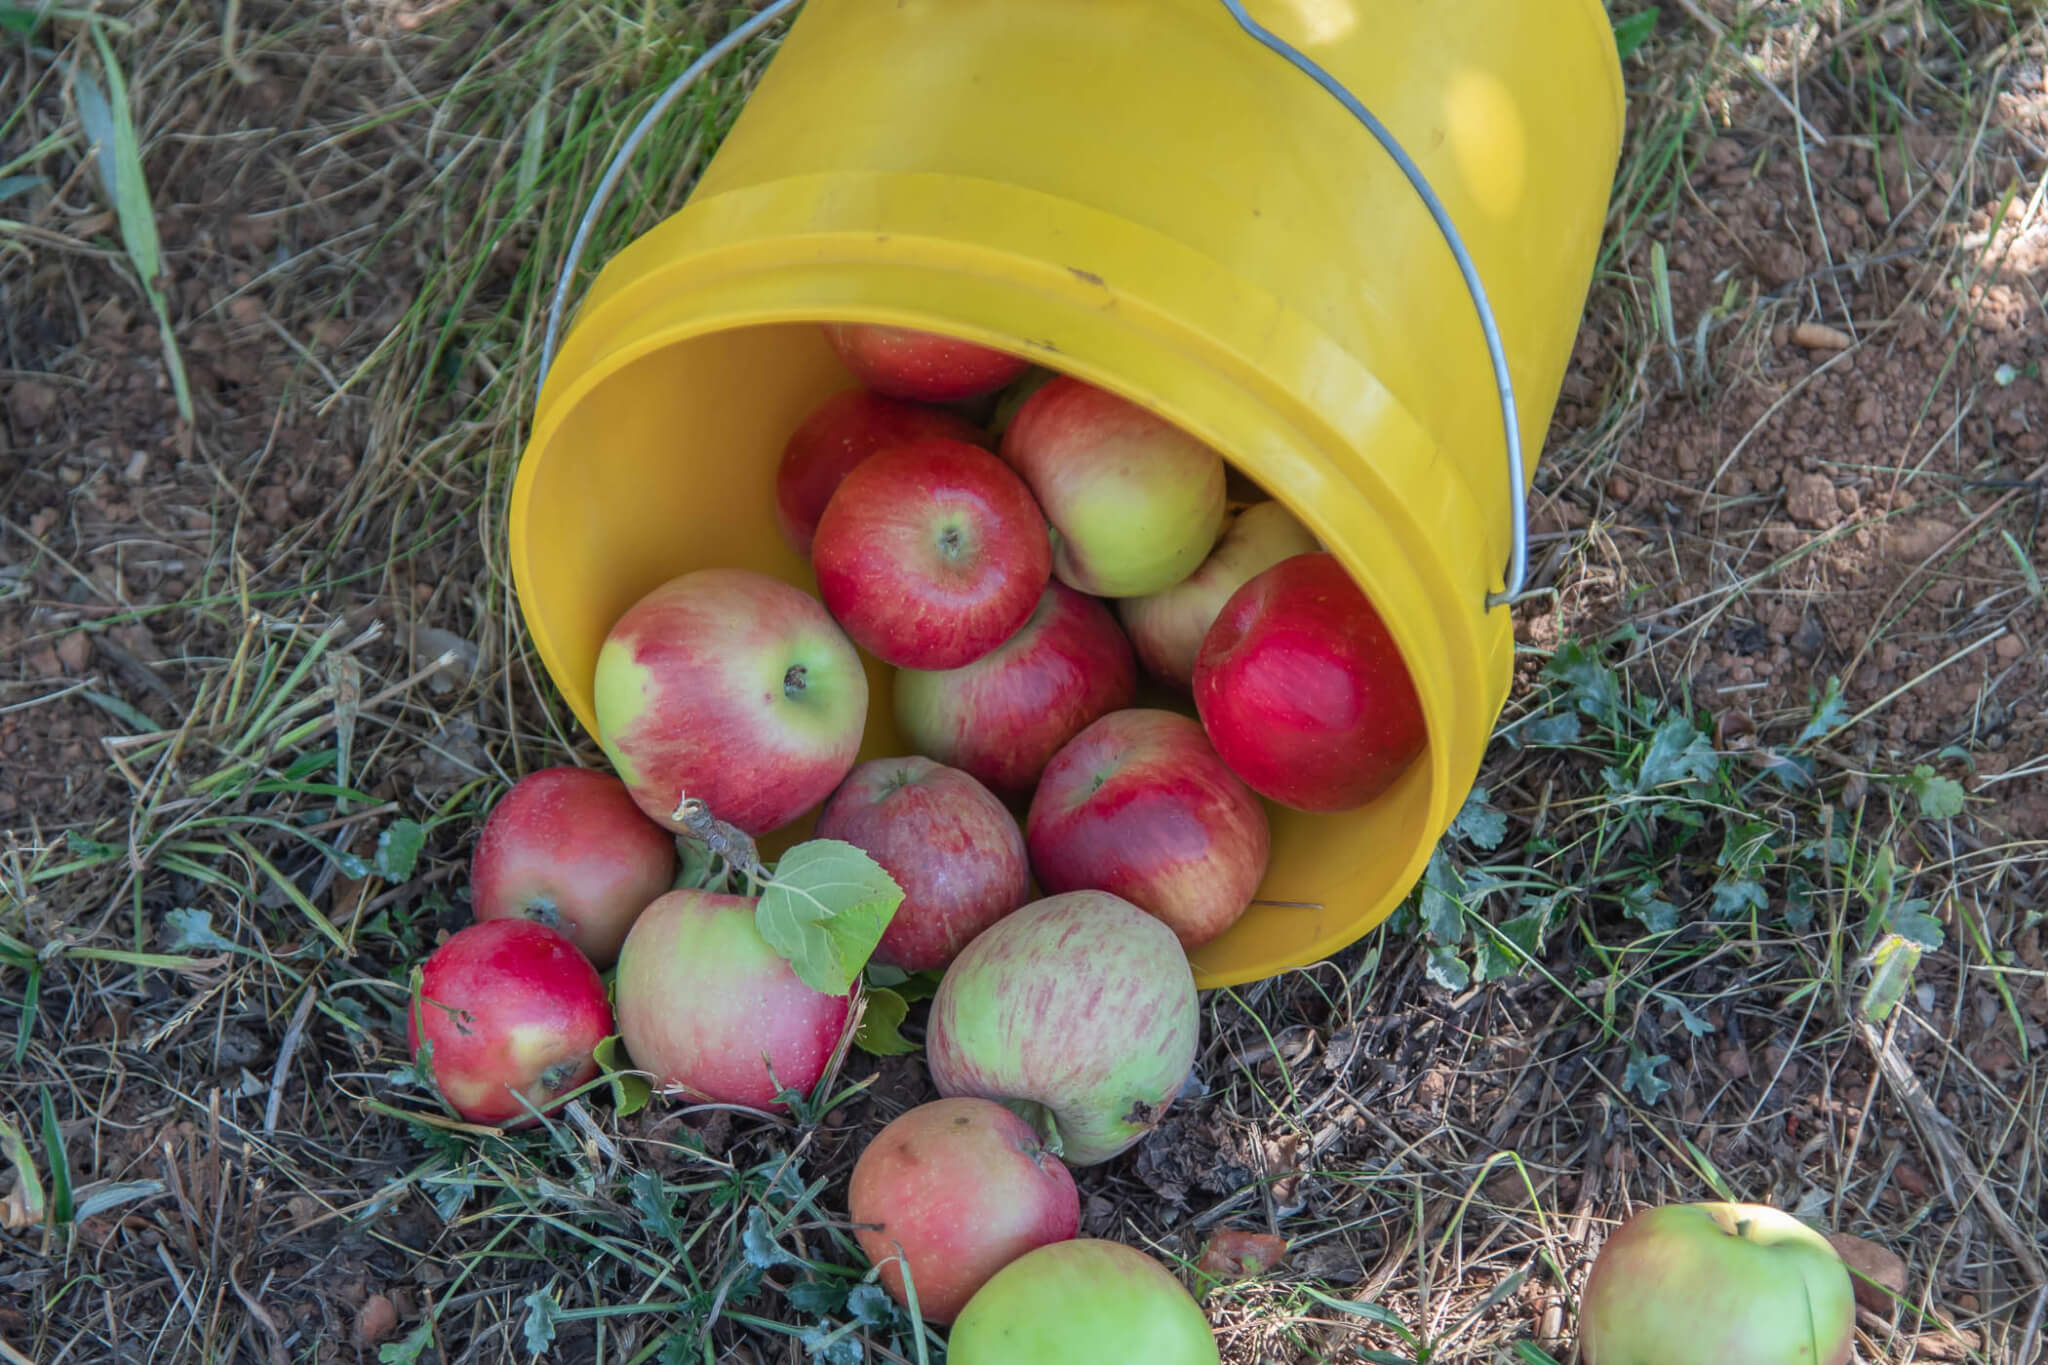 Apple Hill: All the Best Apple Hill Stops